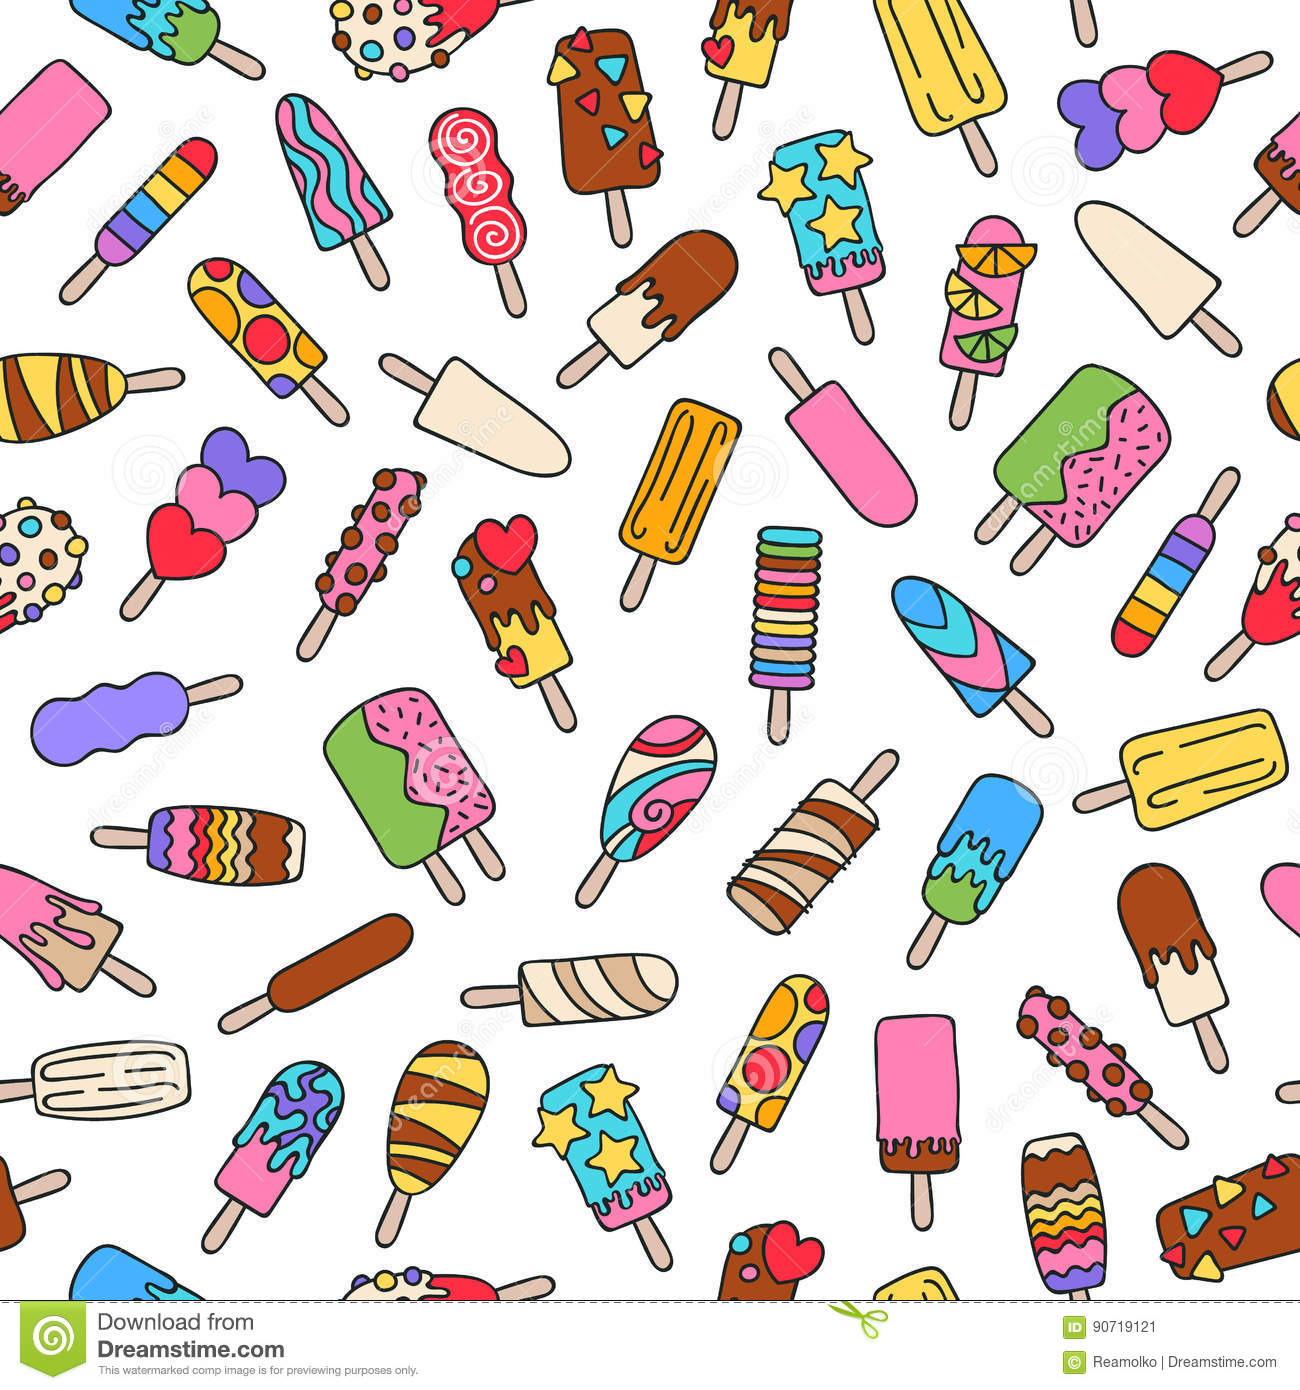 Seamless Wallpaper Pattern With Ice Cream Icons Stock: Popsicle Ice Cream Icons Pattern. Stock Vector